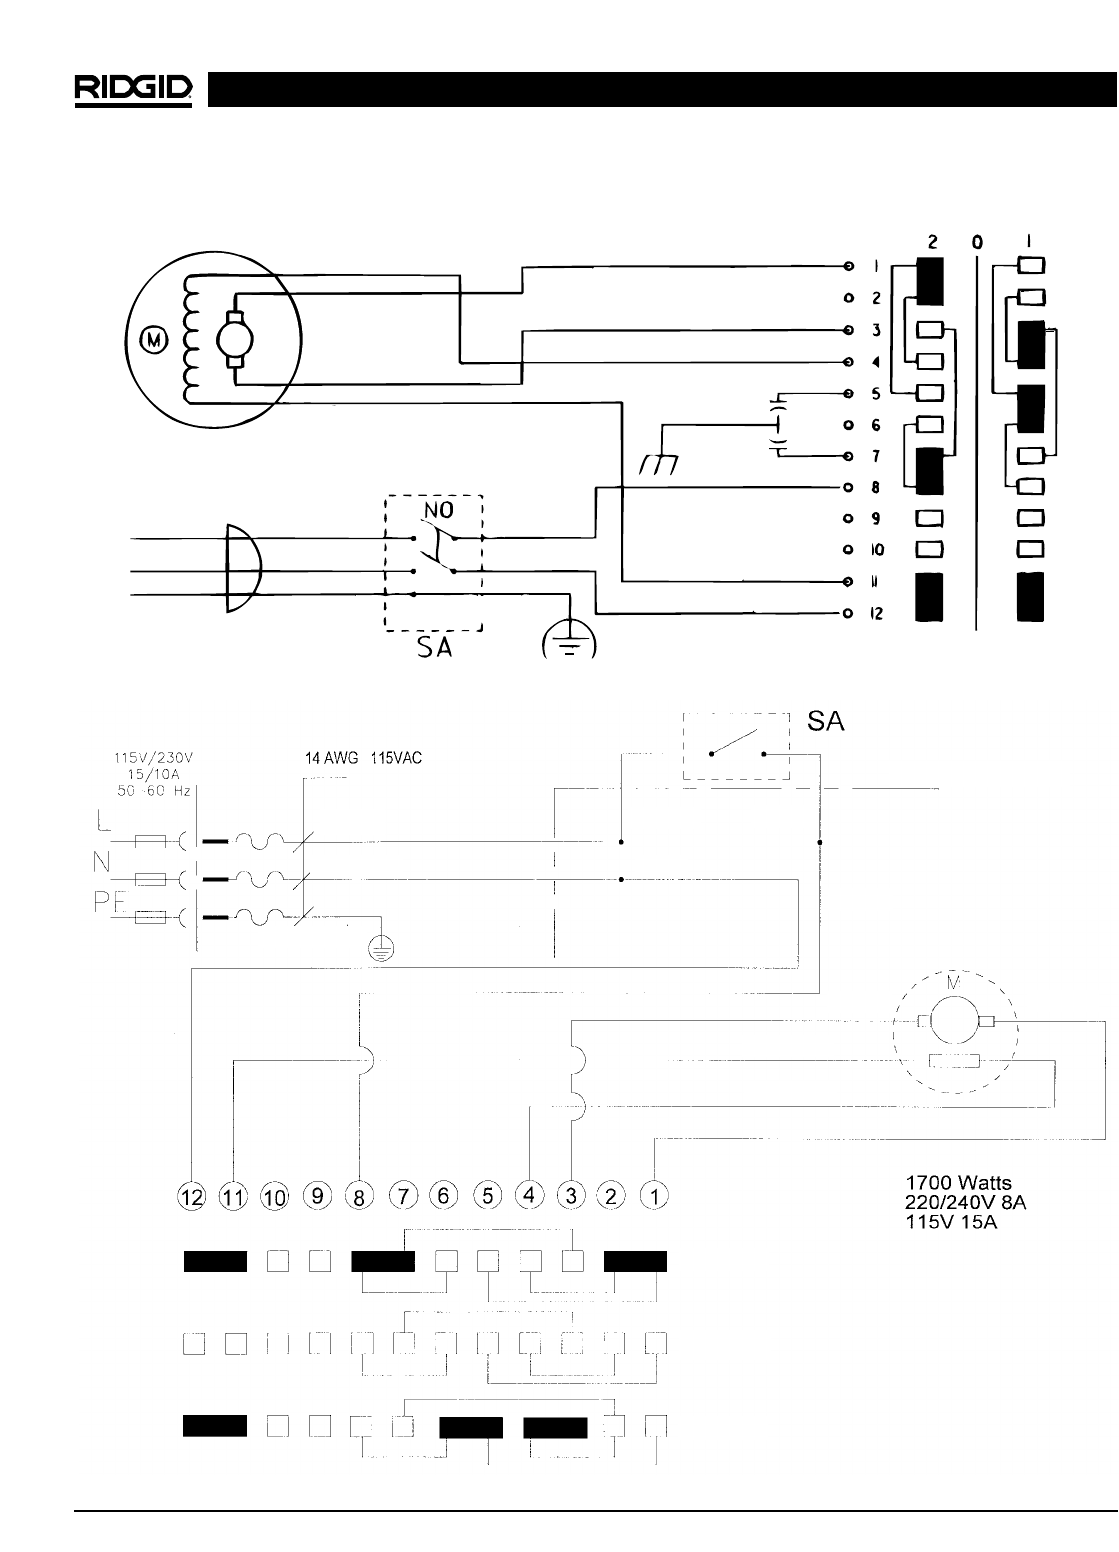 68b109bc 3c1f 445d 9958 08de9edaa37c bg14 page 20 of ridgid sewing machine 300 user guide manualsonline com ridgid 300 switch wiring diagram at crackthecode.co